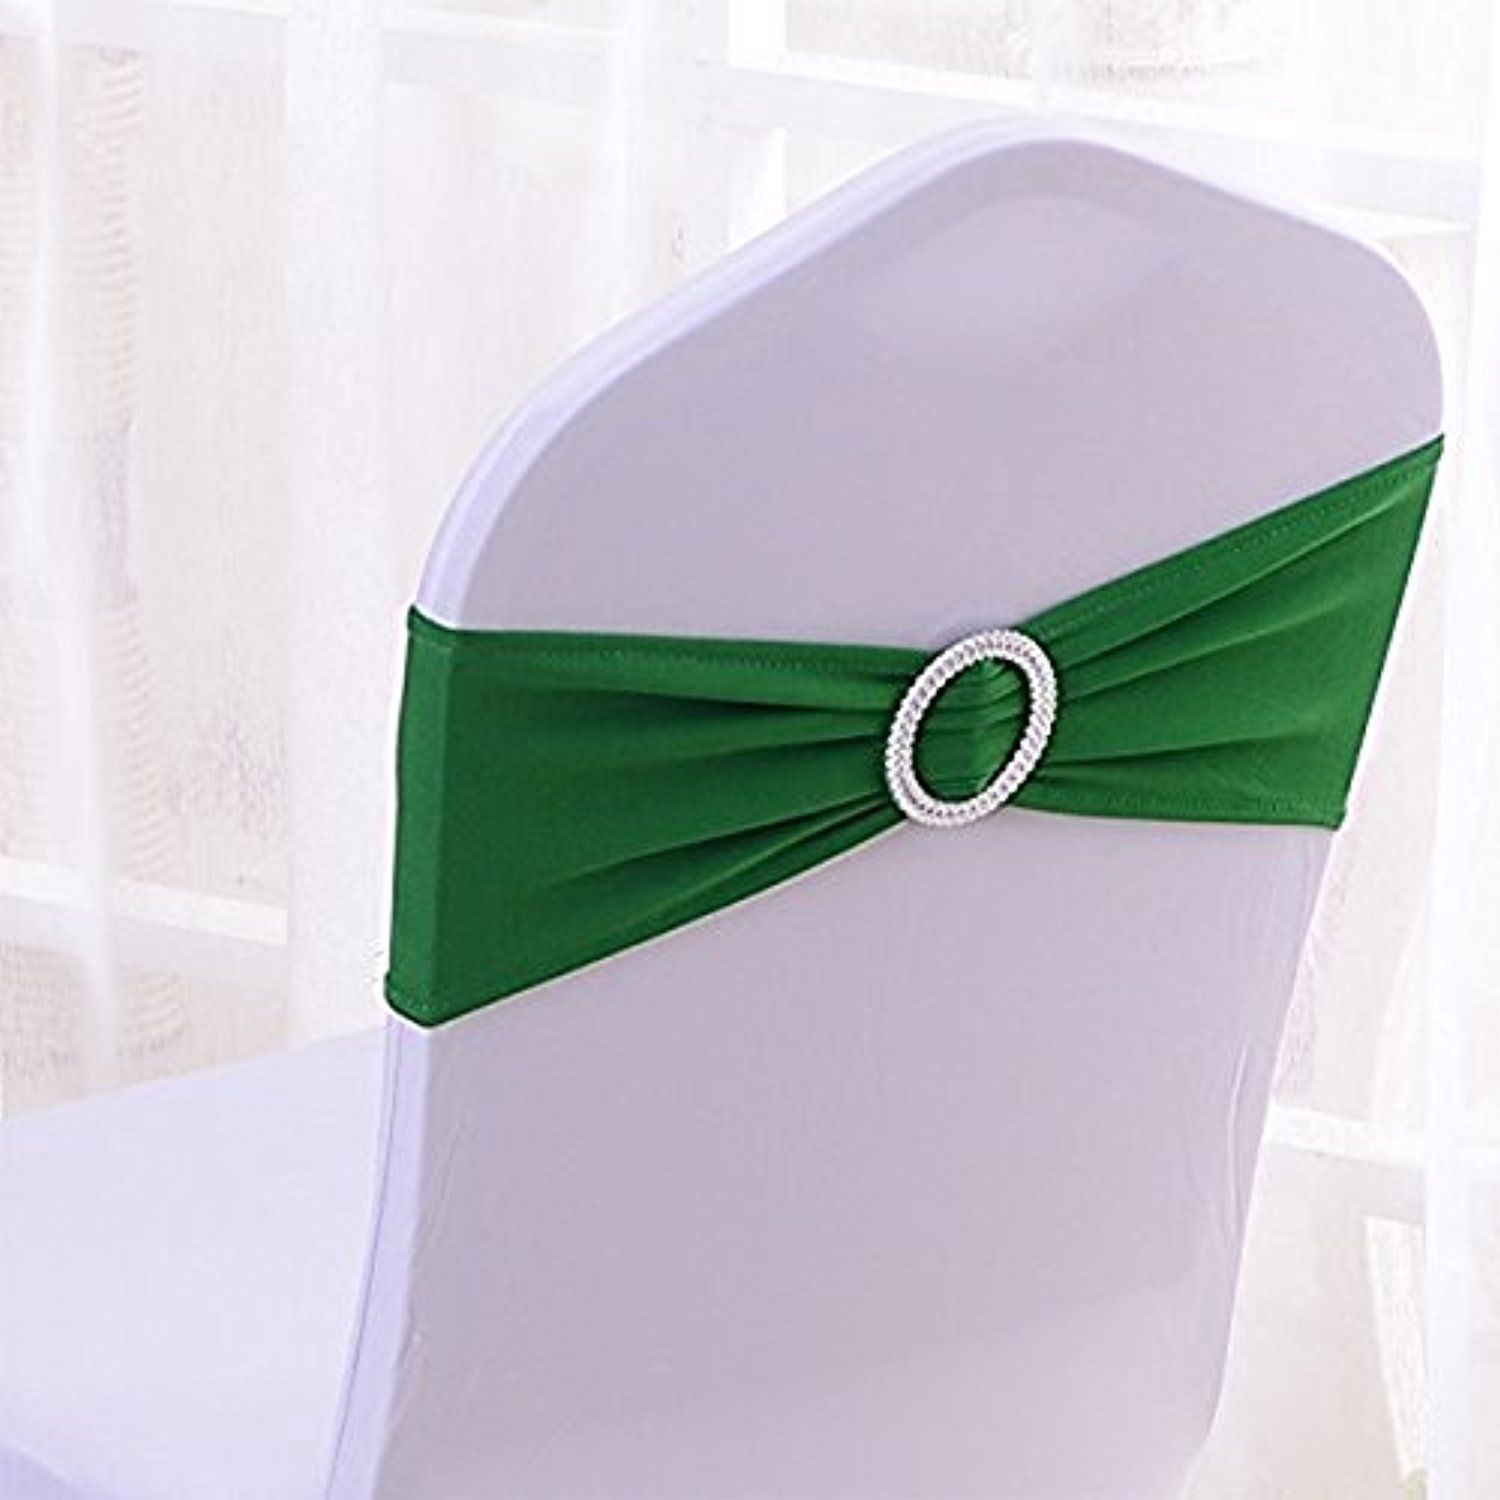 VDragons Stretch Chair Cover Band With Buckle Slider